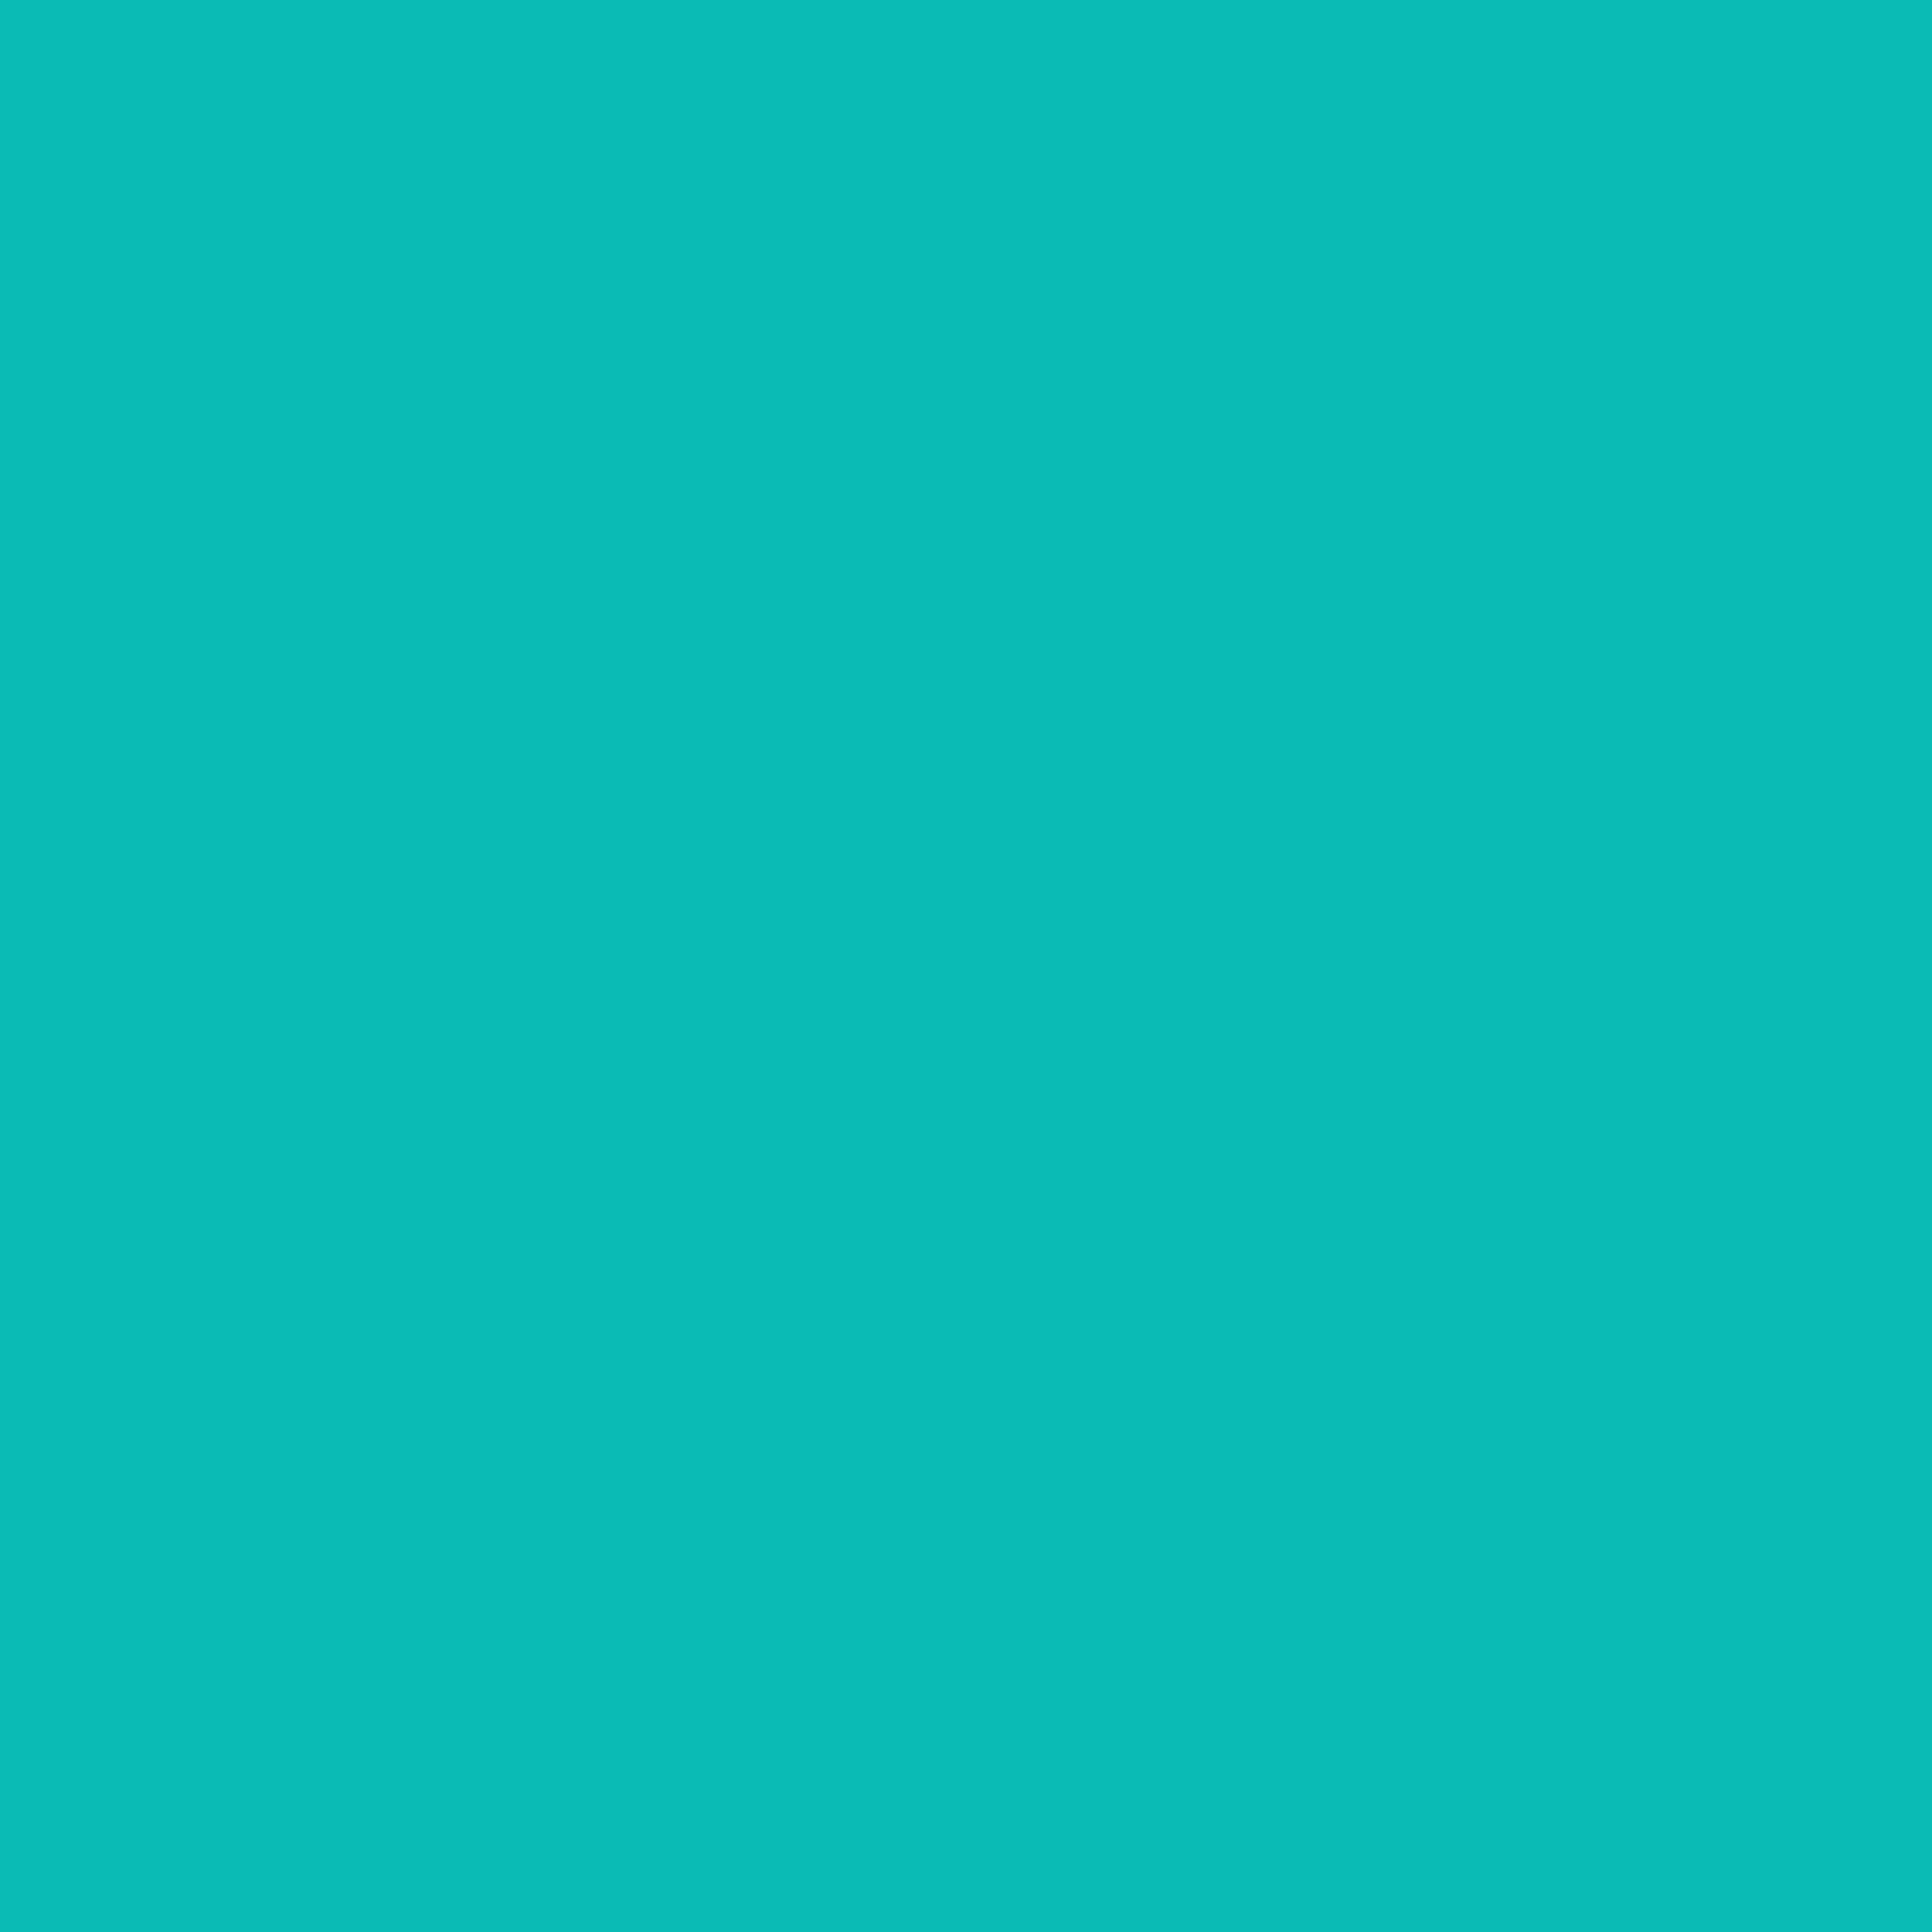 2732x2732 Tiffany Blue Solid Color Background